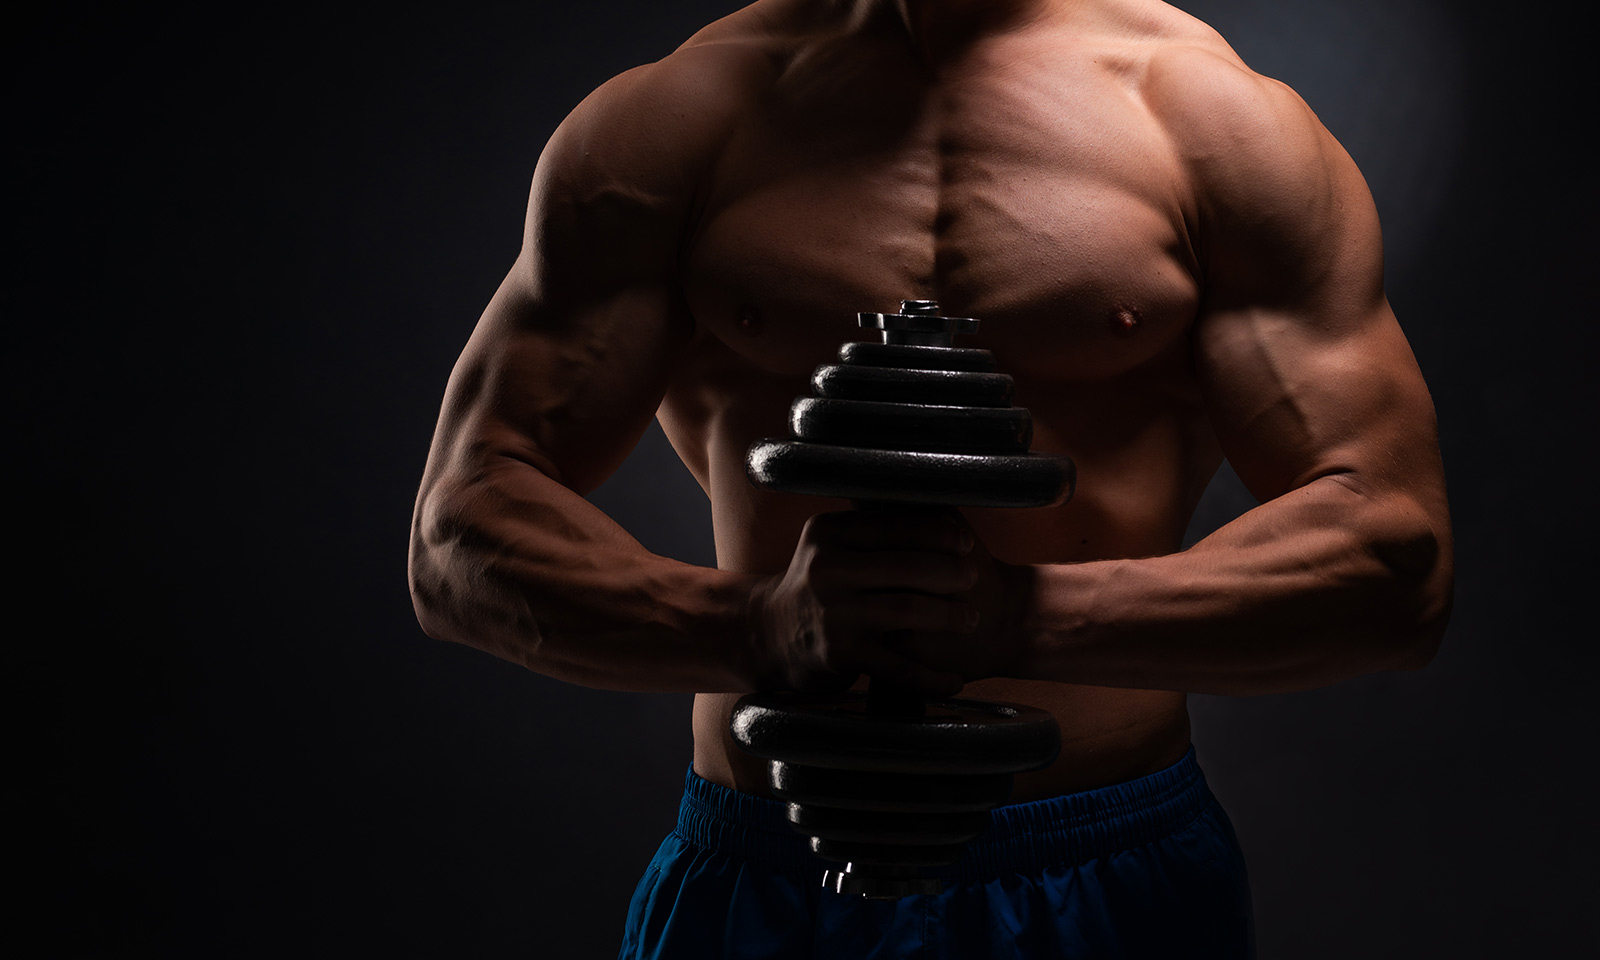 6-life-hacks-all-bodybuilders-should-know